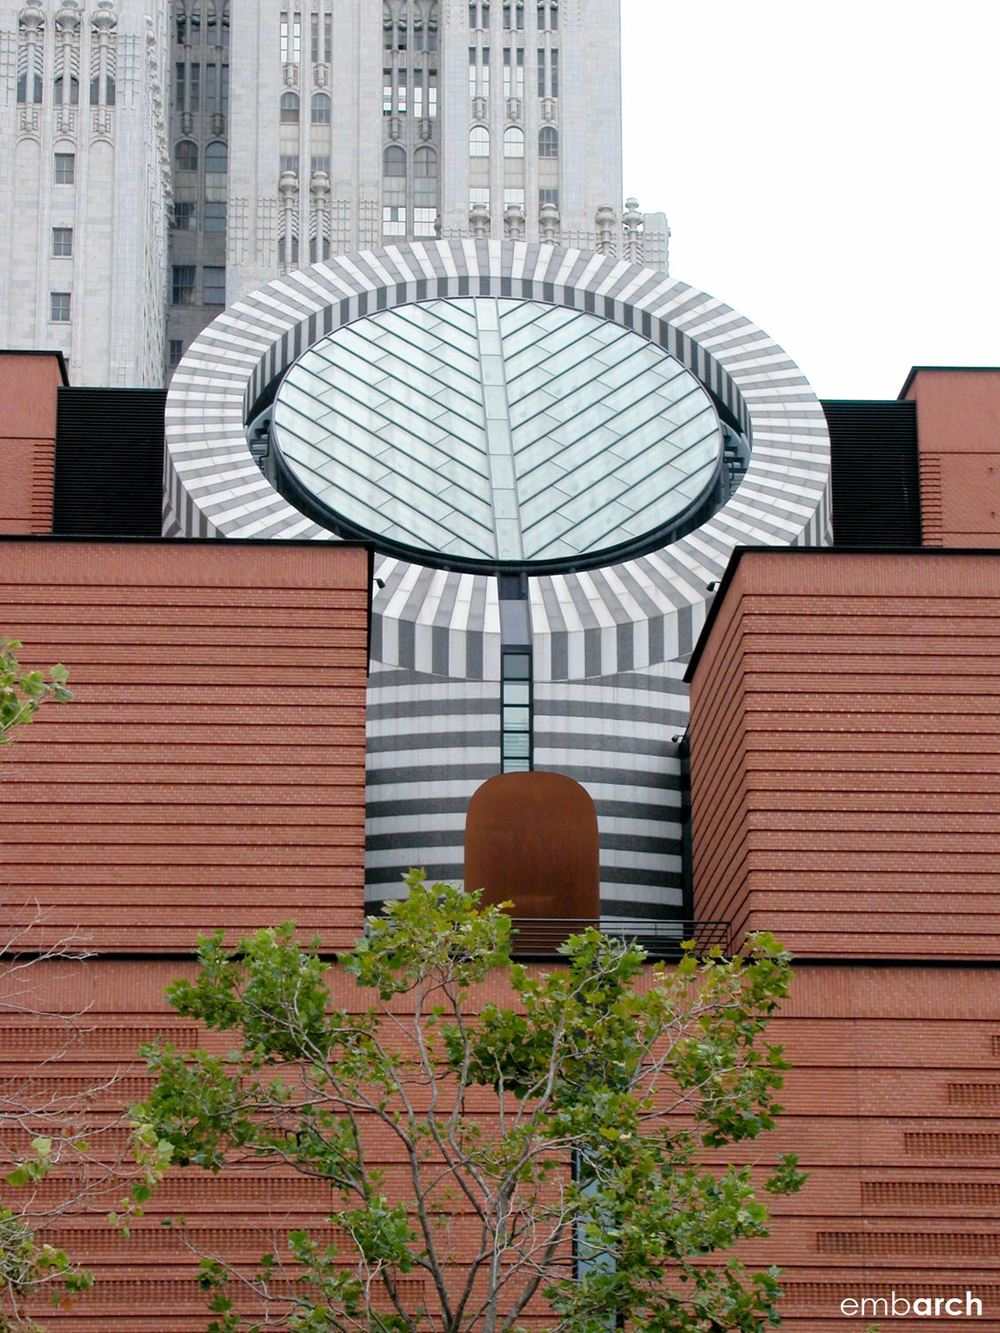 San Francisco Museum of Modern Art - exterior detail